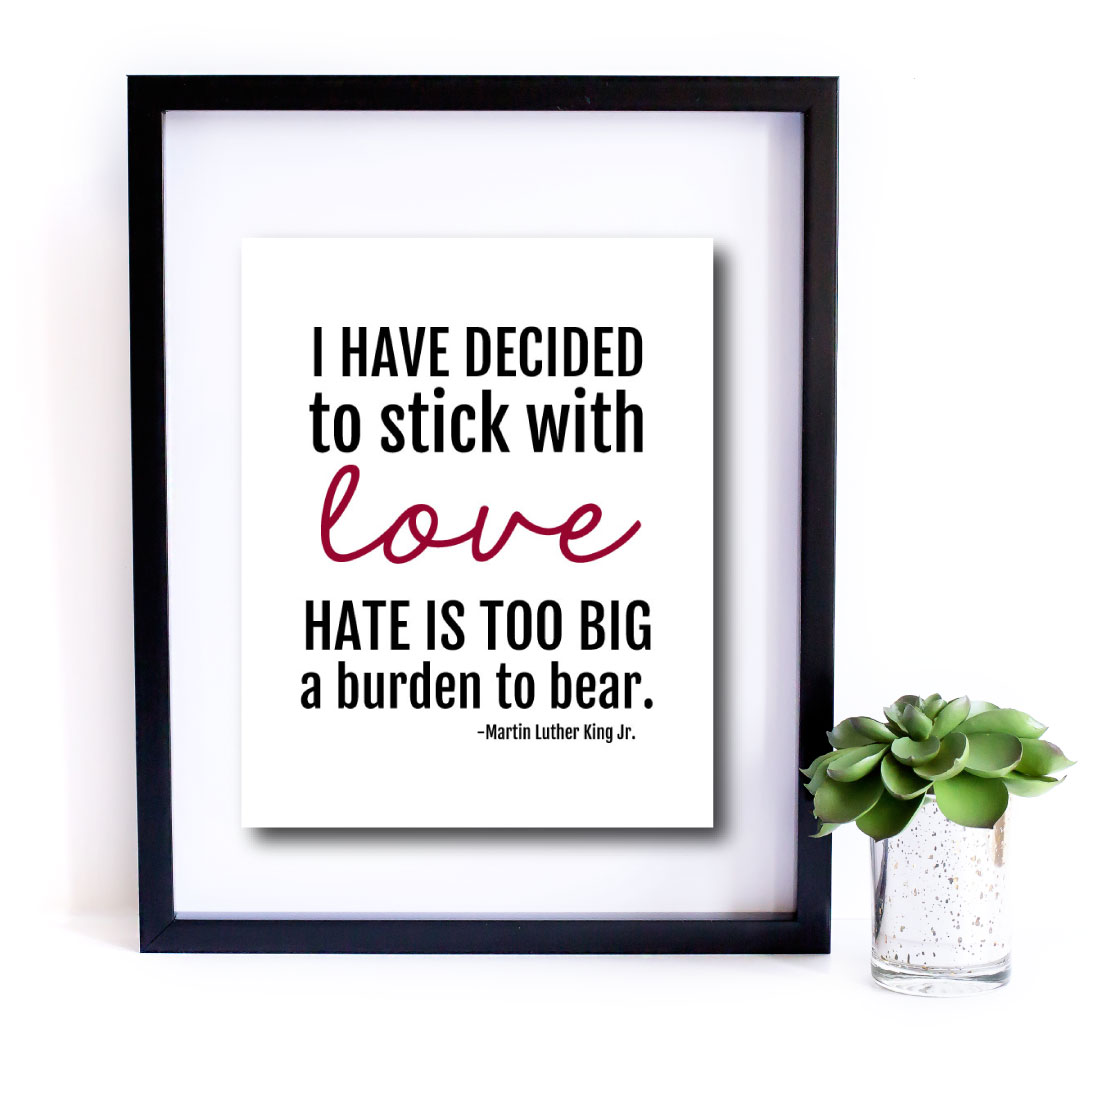 Martin Luther King Jr. Quote - download this 8x10 print from www.thirtyhandmadedays.com